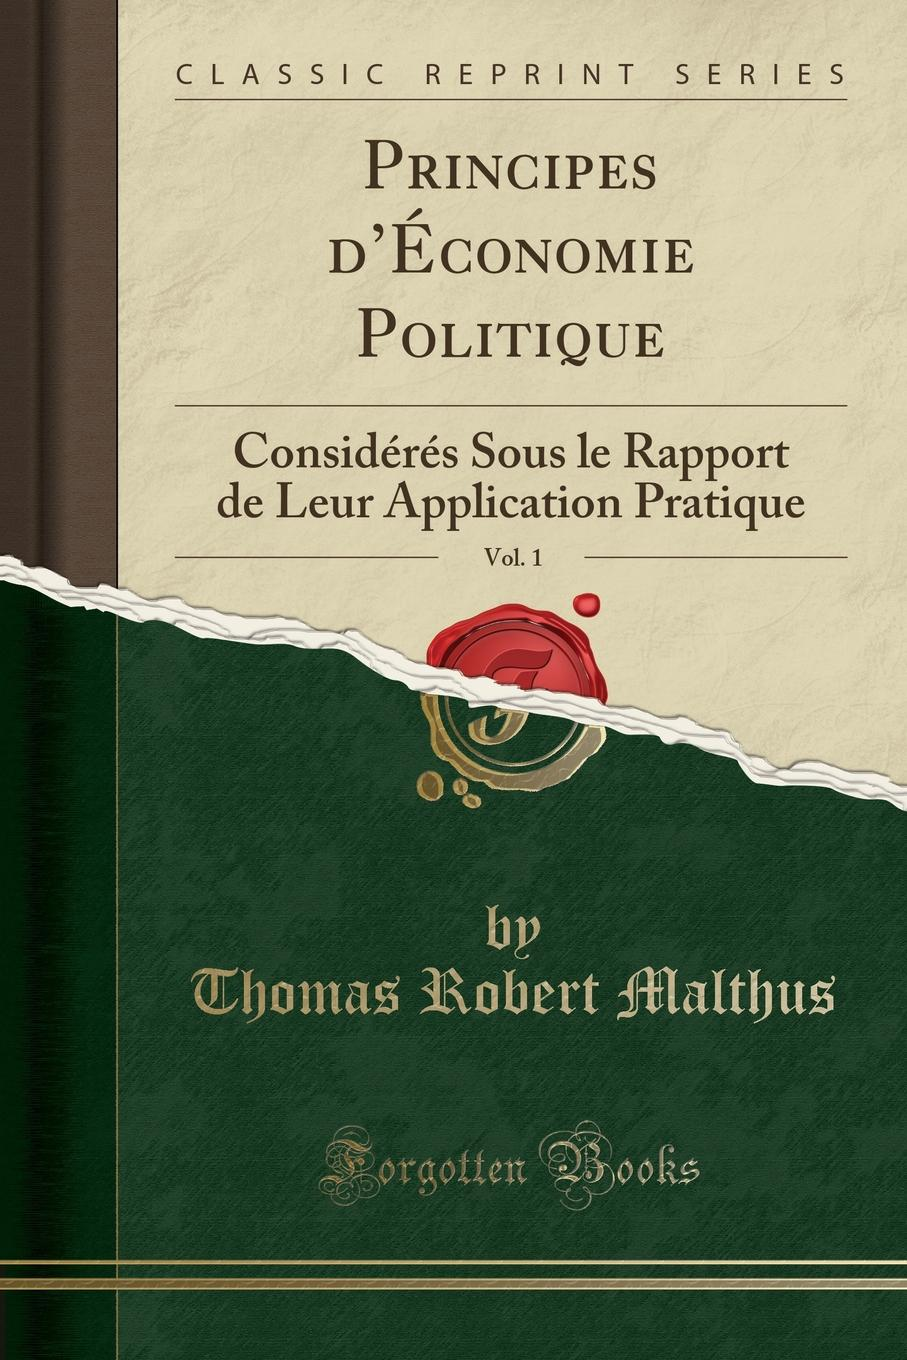 Principes d.Economie Politique, Vol. 1. Consideres Sous le Rapport de Leur Application Pratique (Classic Reprint) Excerpt from Principes d'Р?conomie Politique Vol....